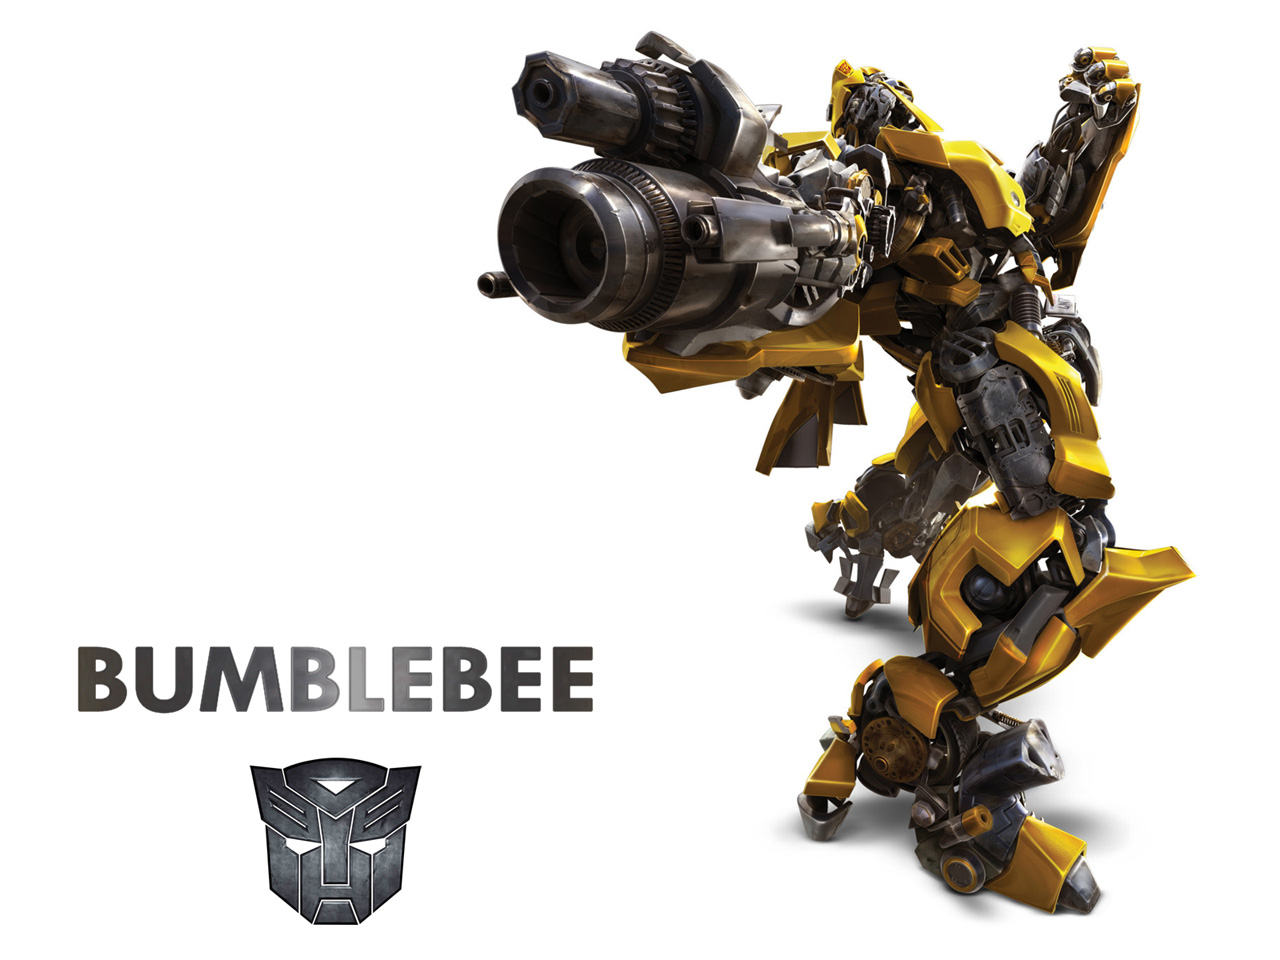 Free Bumblebee, Download Free Clip Art, Free Clip Art on.